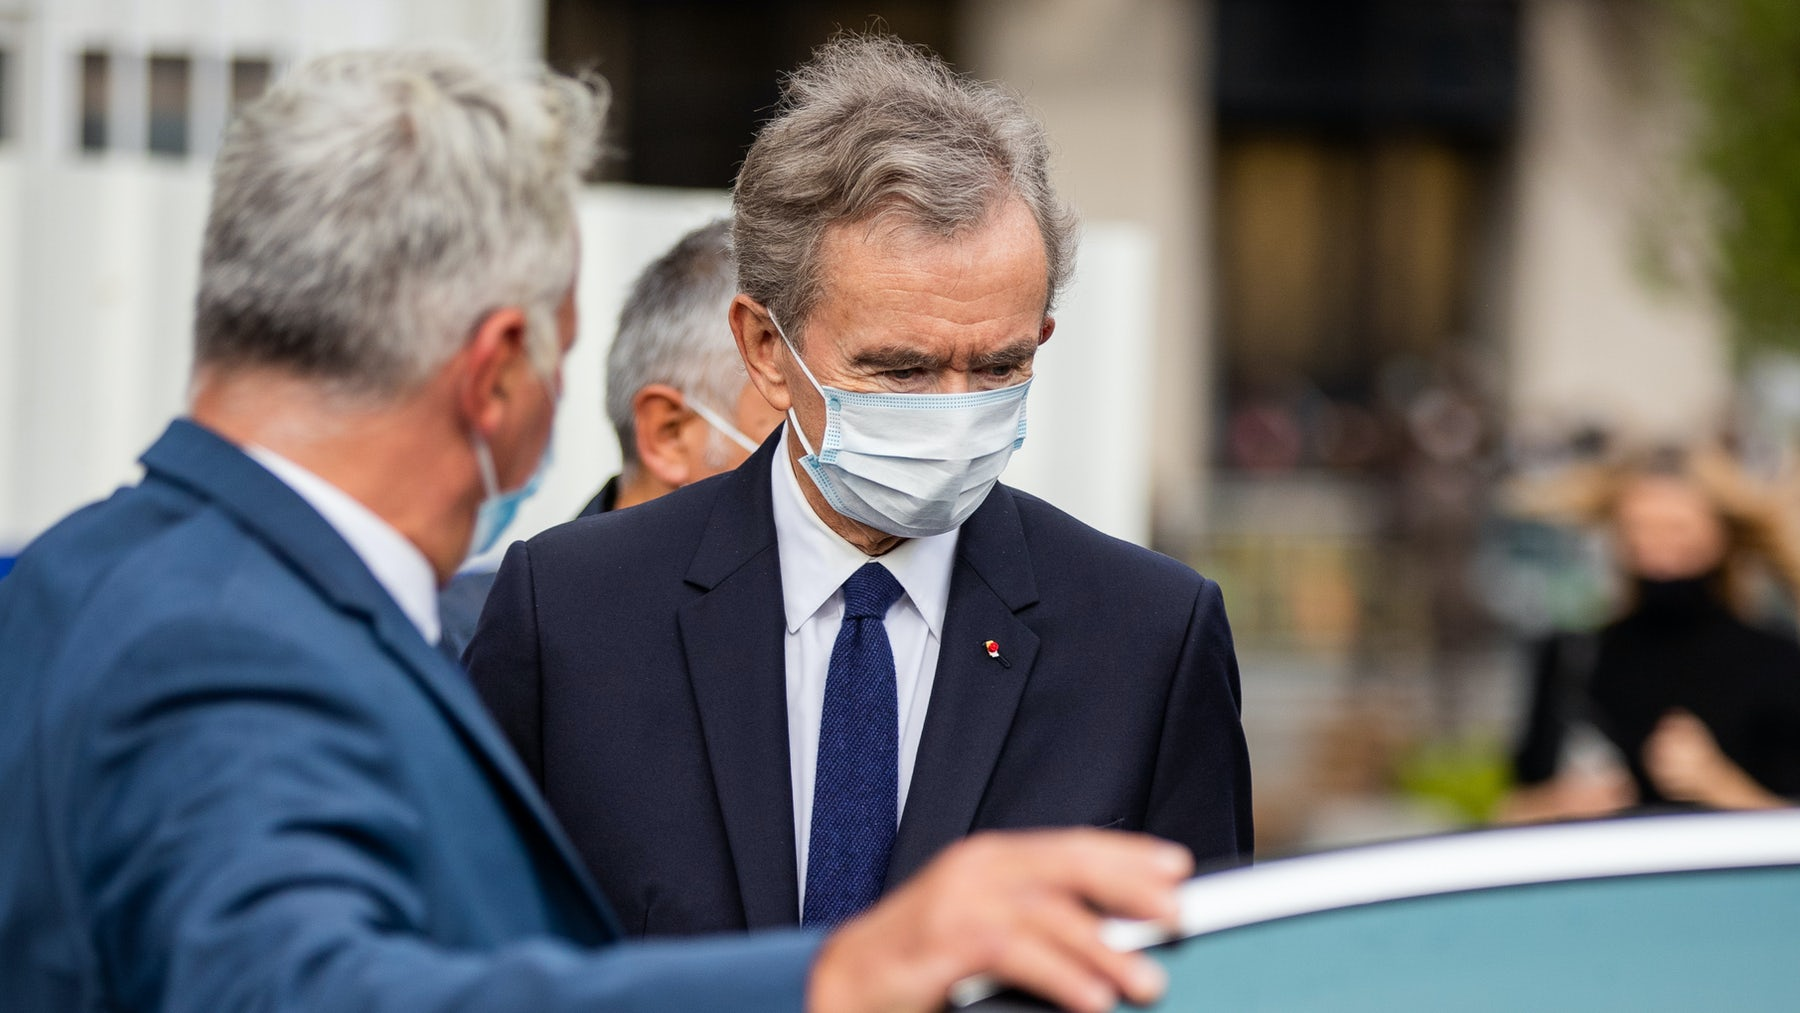 Bernard Arnault leaves the Louis Vuitton spring 2021 womenswear show in October 2020. Getty Images.